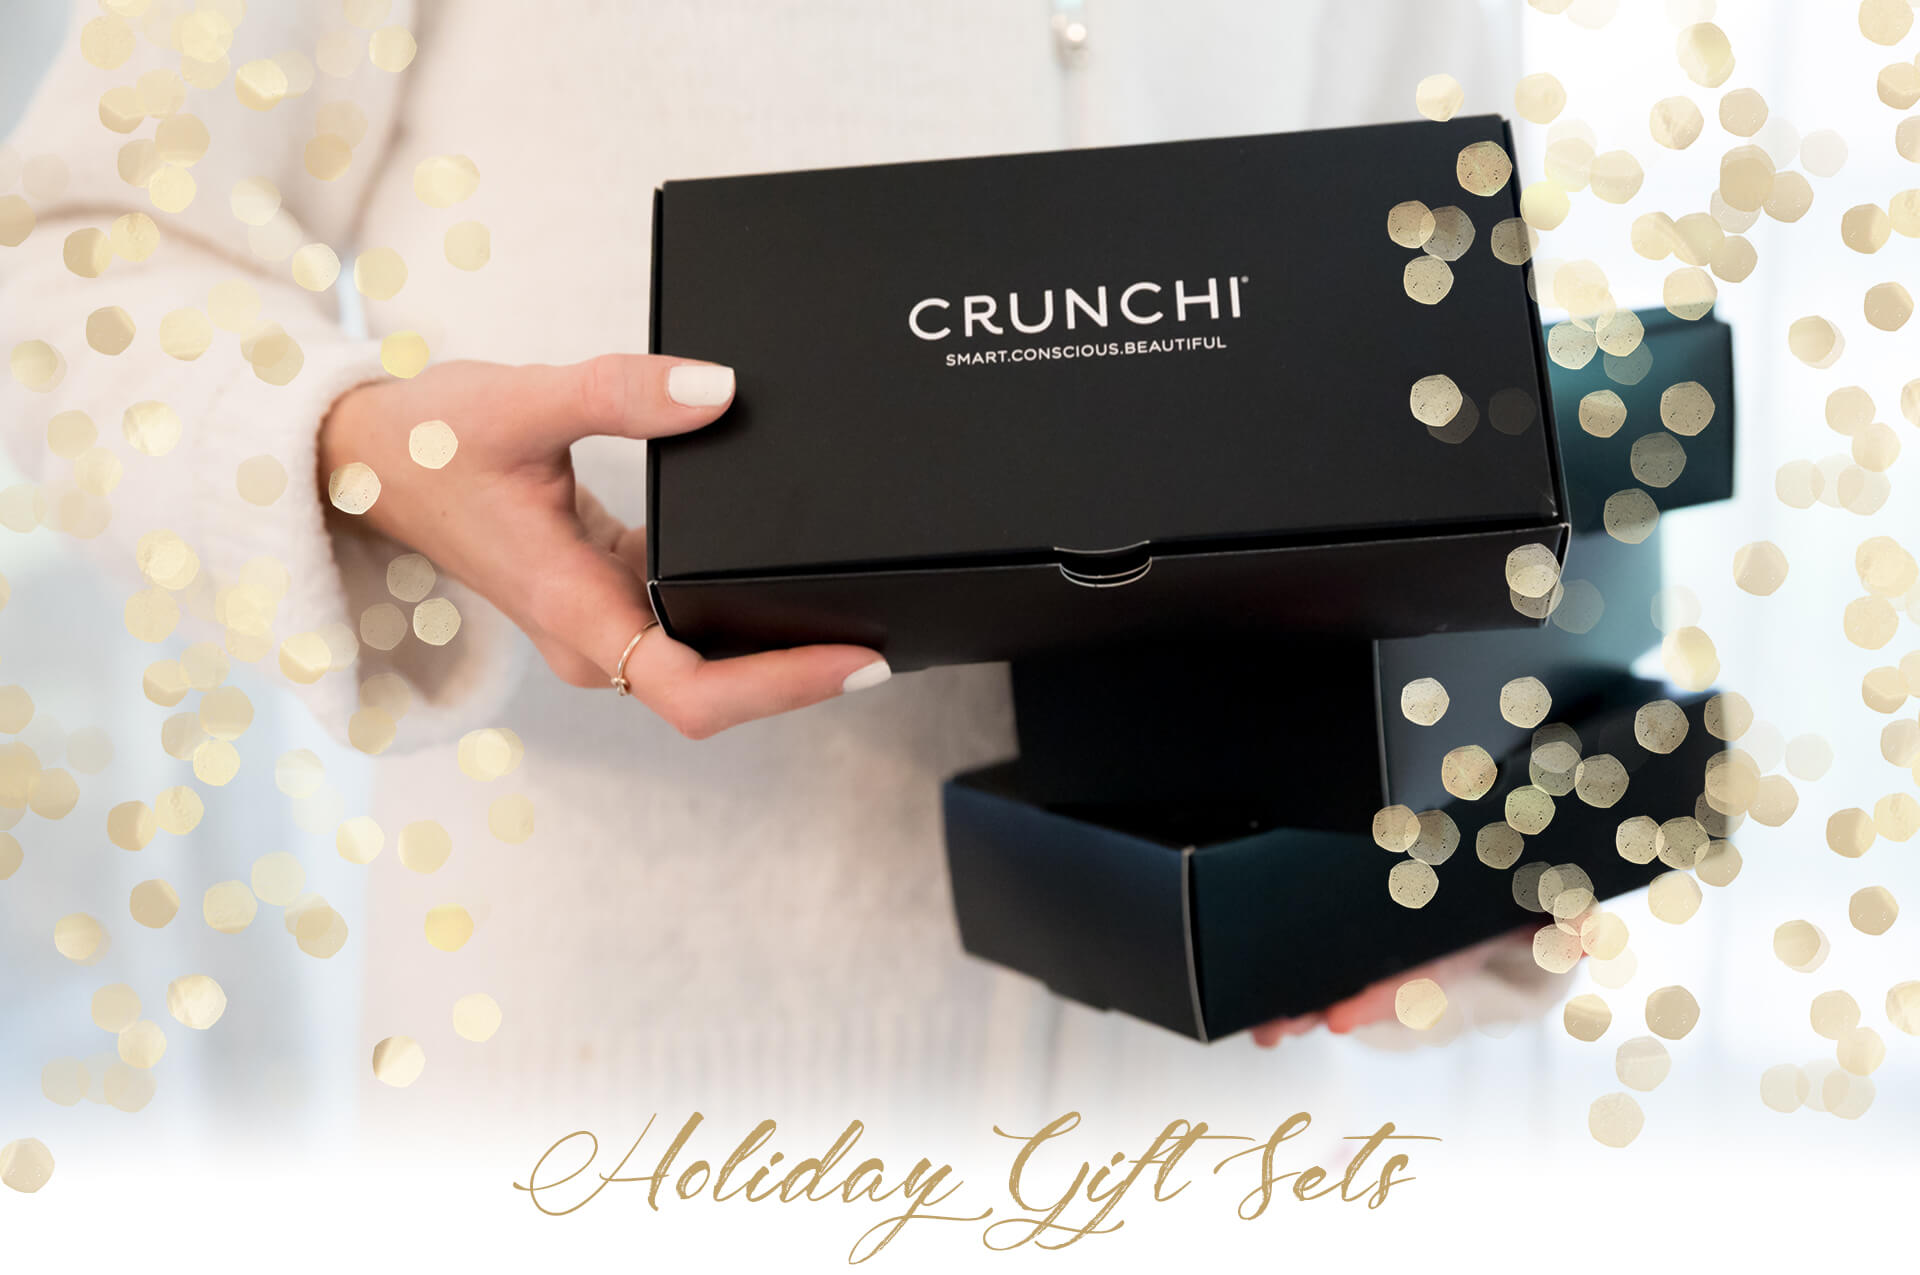 Holiday Giftsets